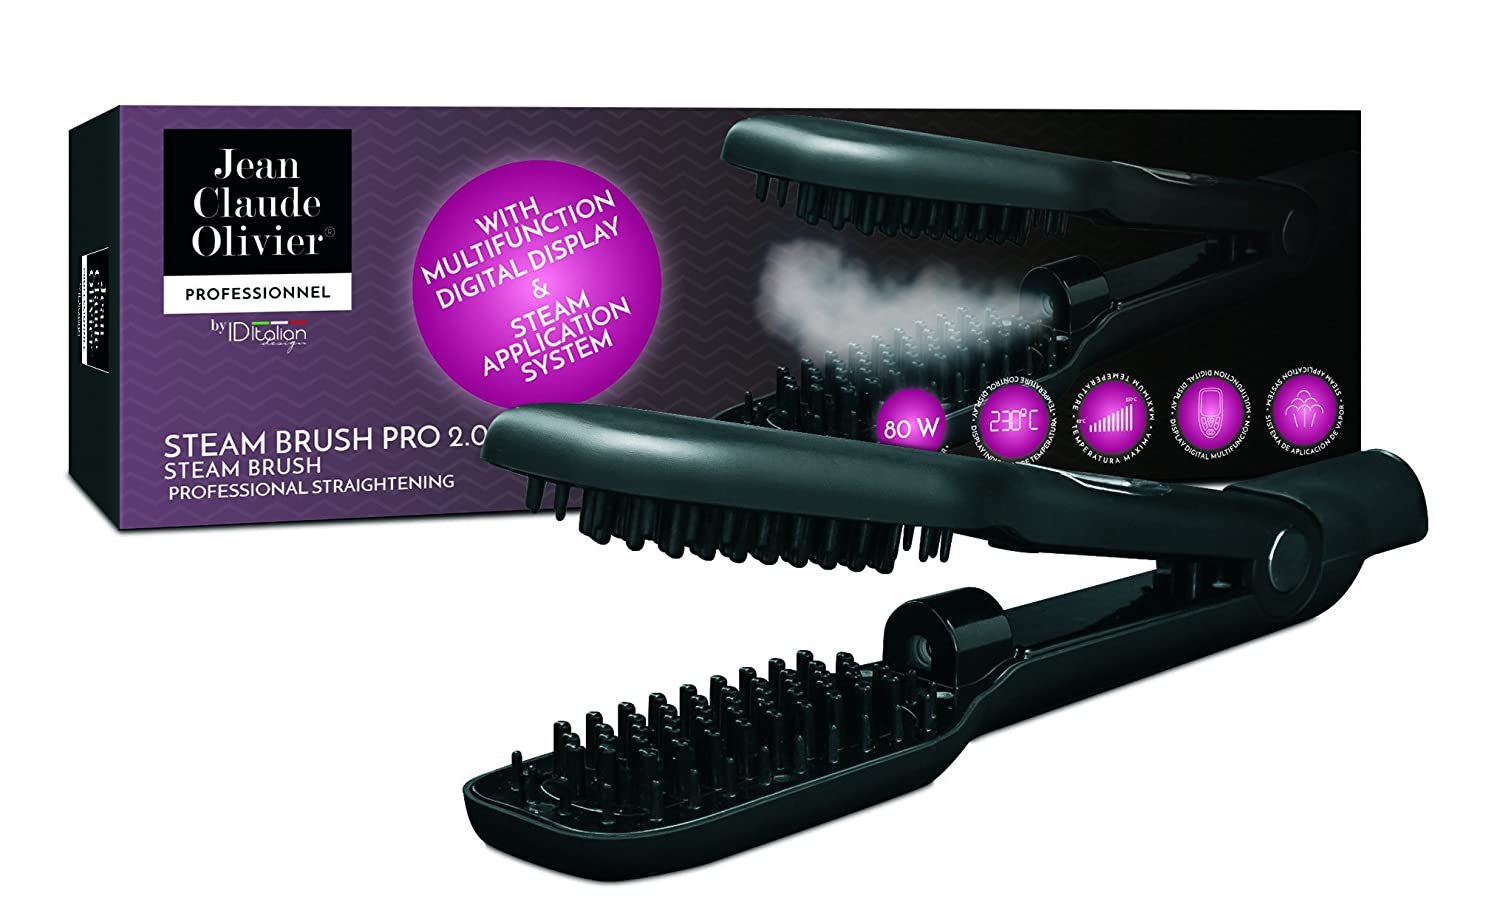 Jean Claude Olivier - Stream Brush | Cepillo Alisador Profesional de Color Negro - 80W: Amazon.es: Belleza